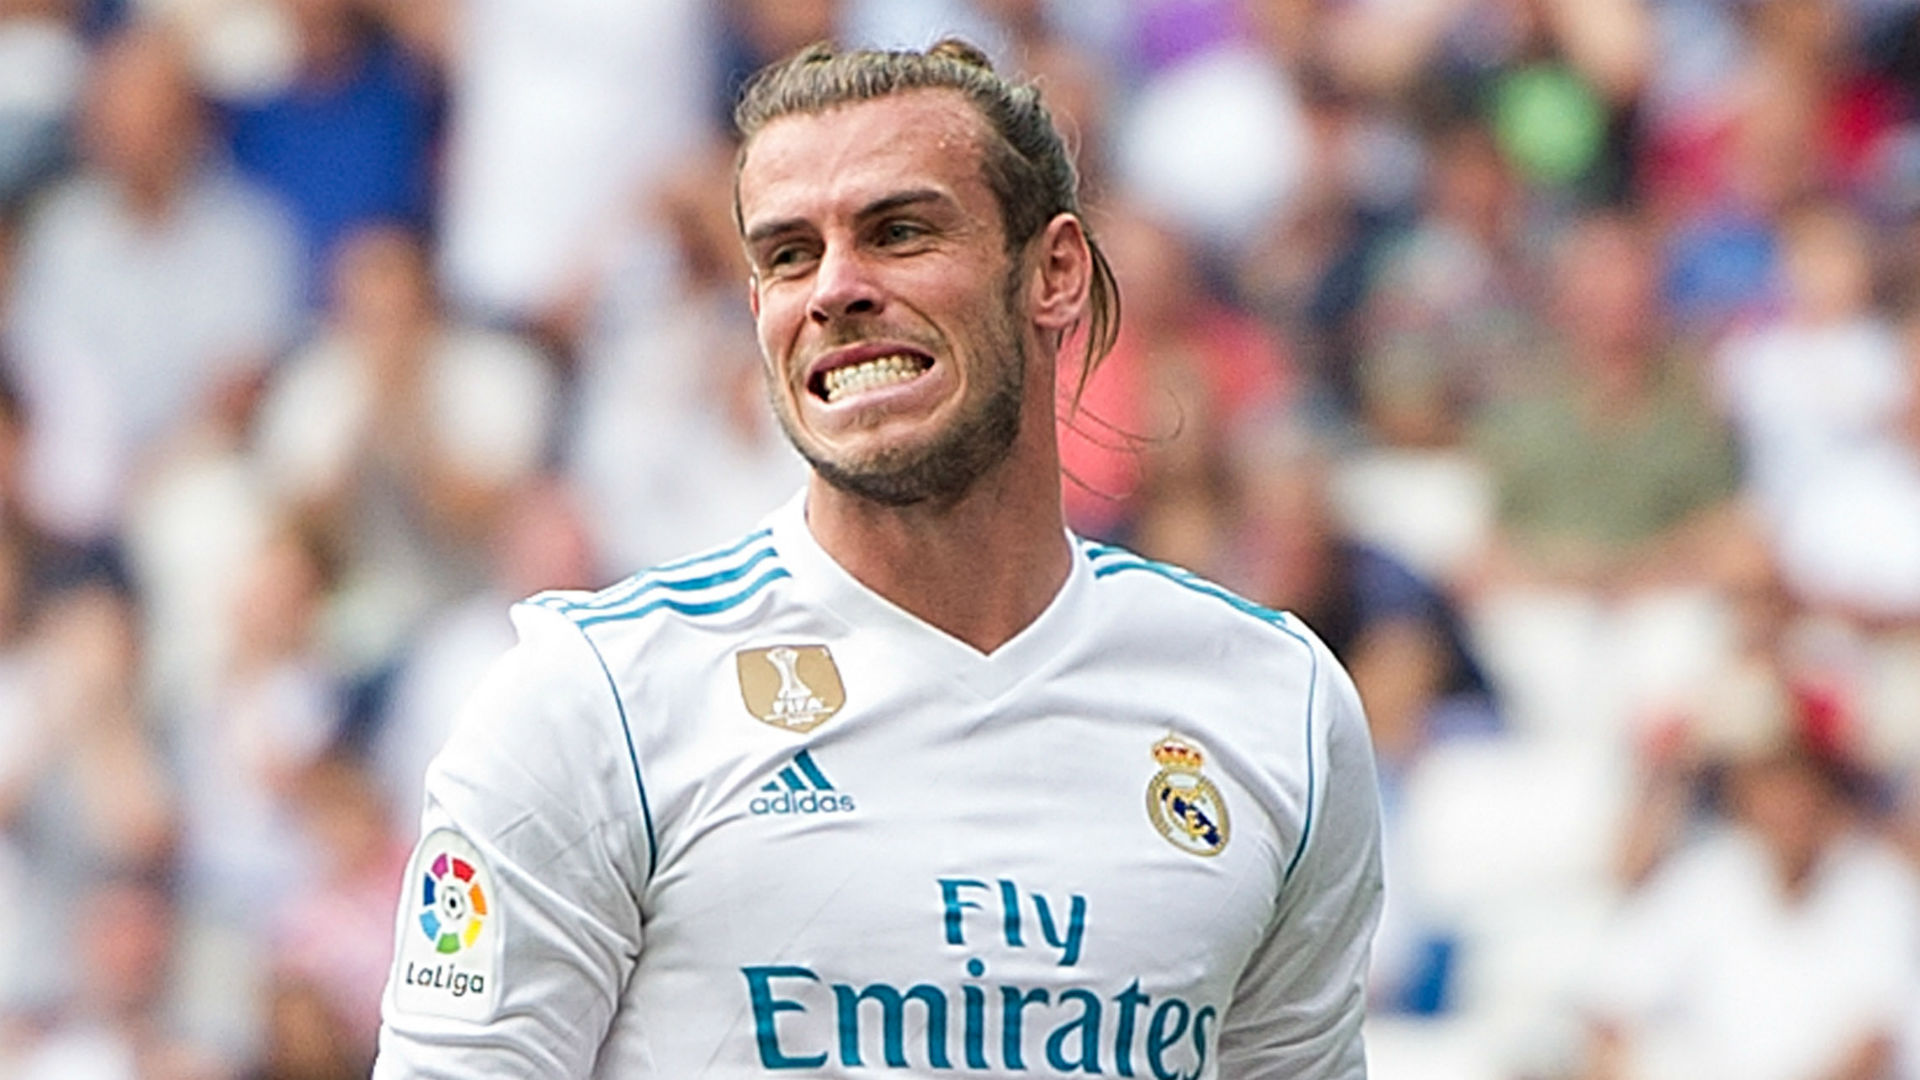 Gareth Bale: I should not have rushed Real Madrid return last season